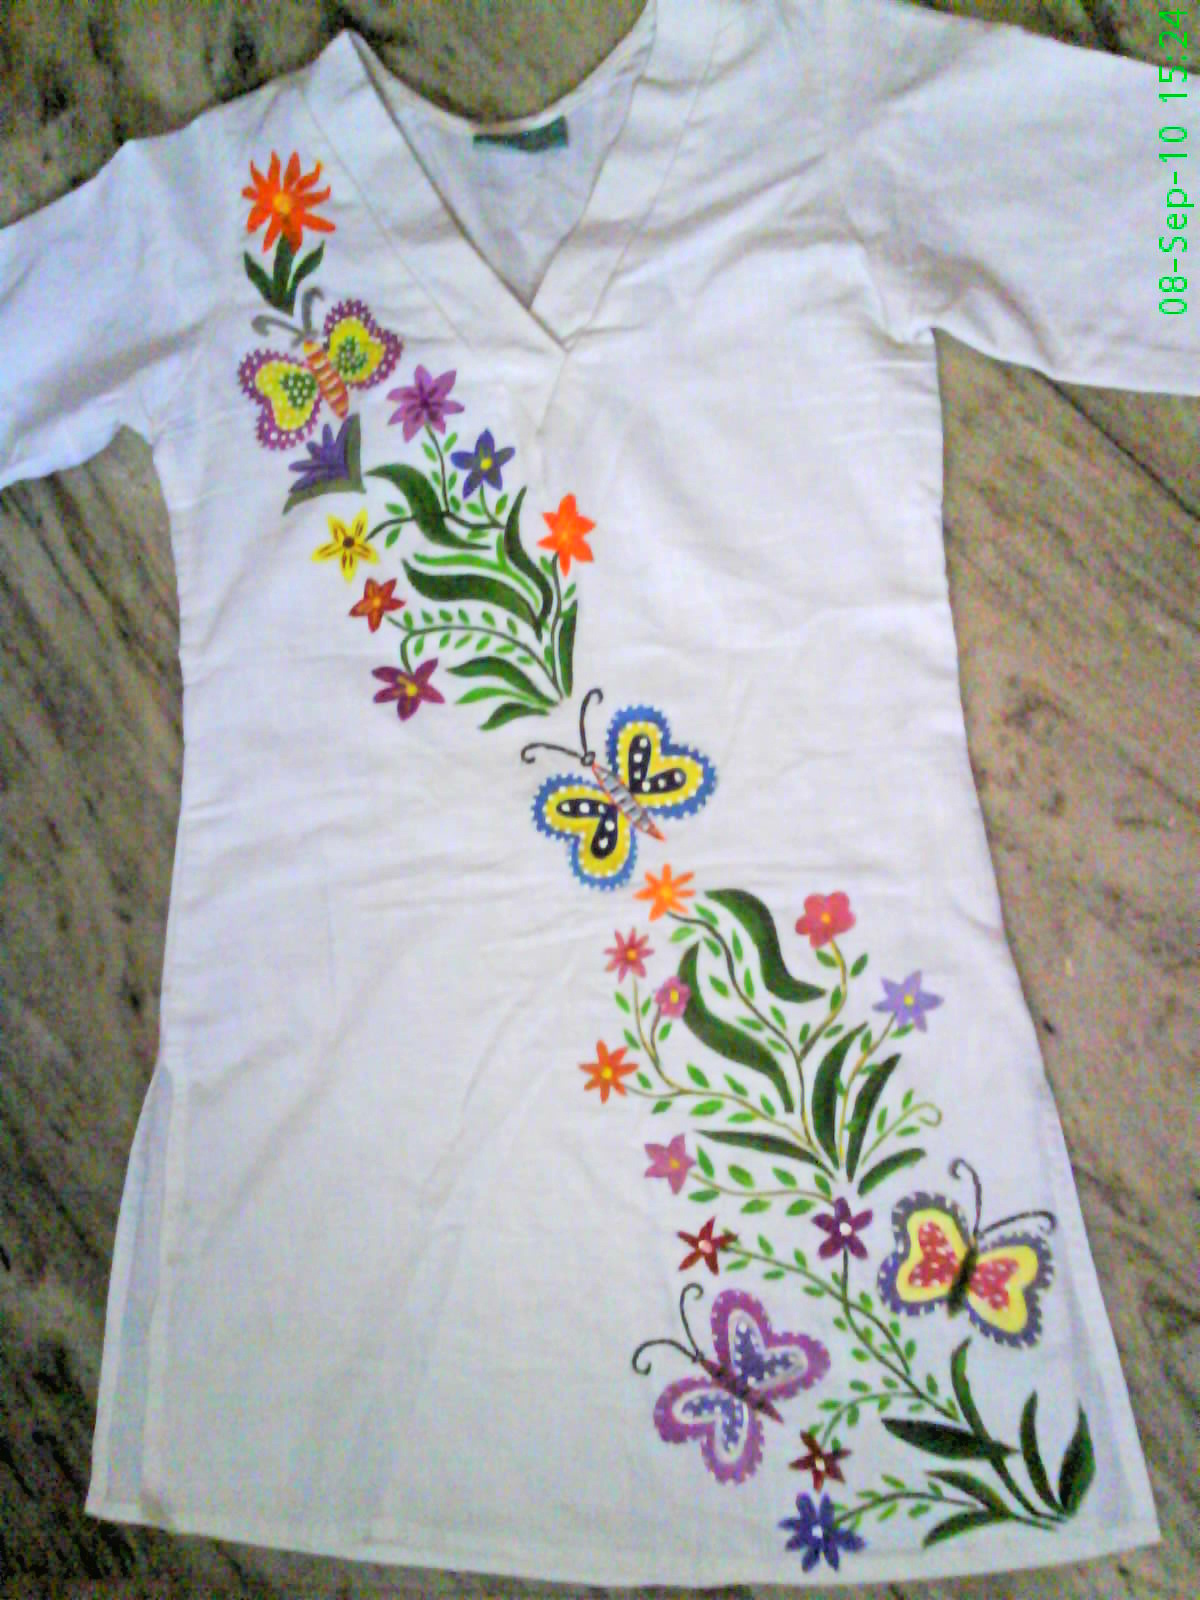 Myriad of memories: Fabric painting for fabric painting designs on white kurtis  150ifm